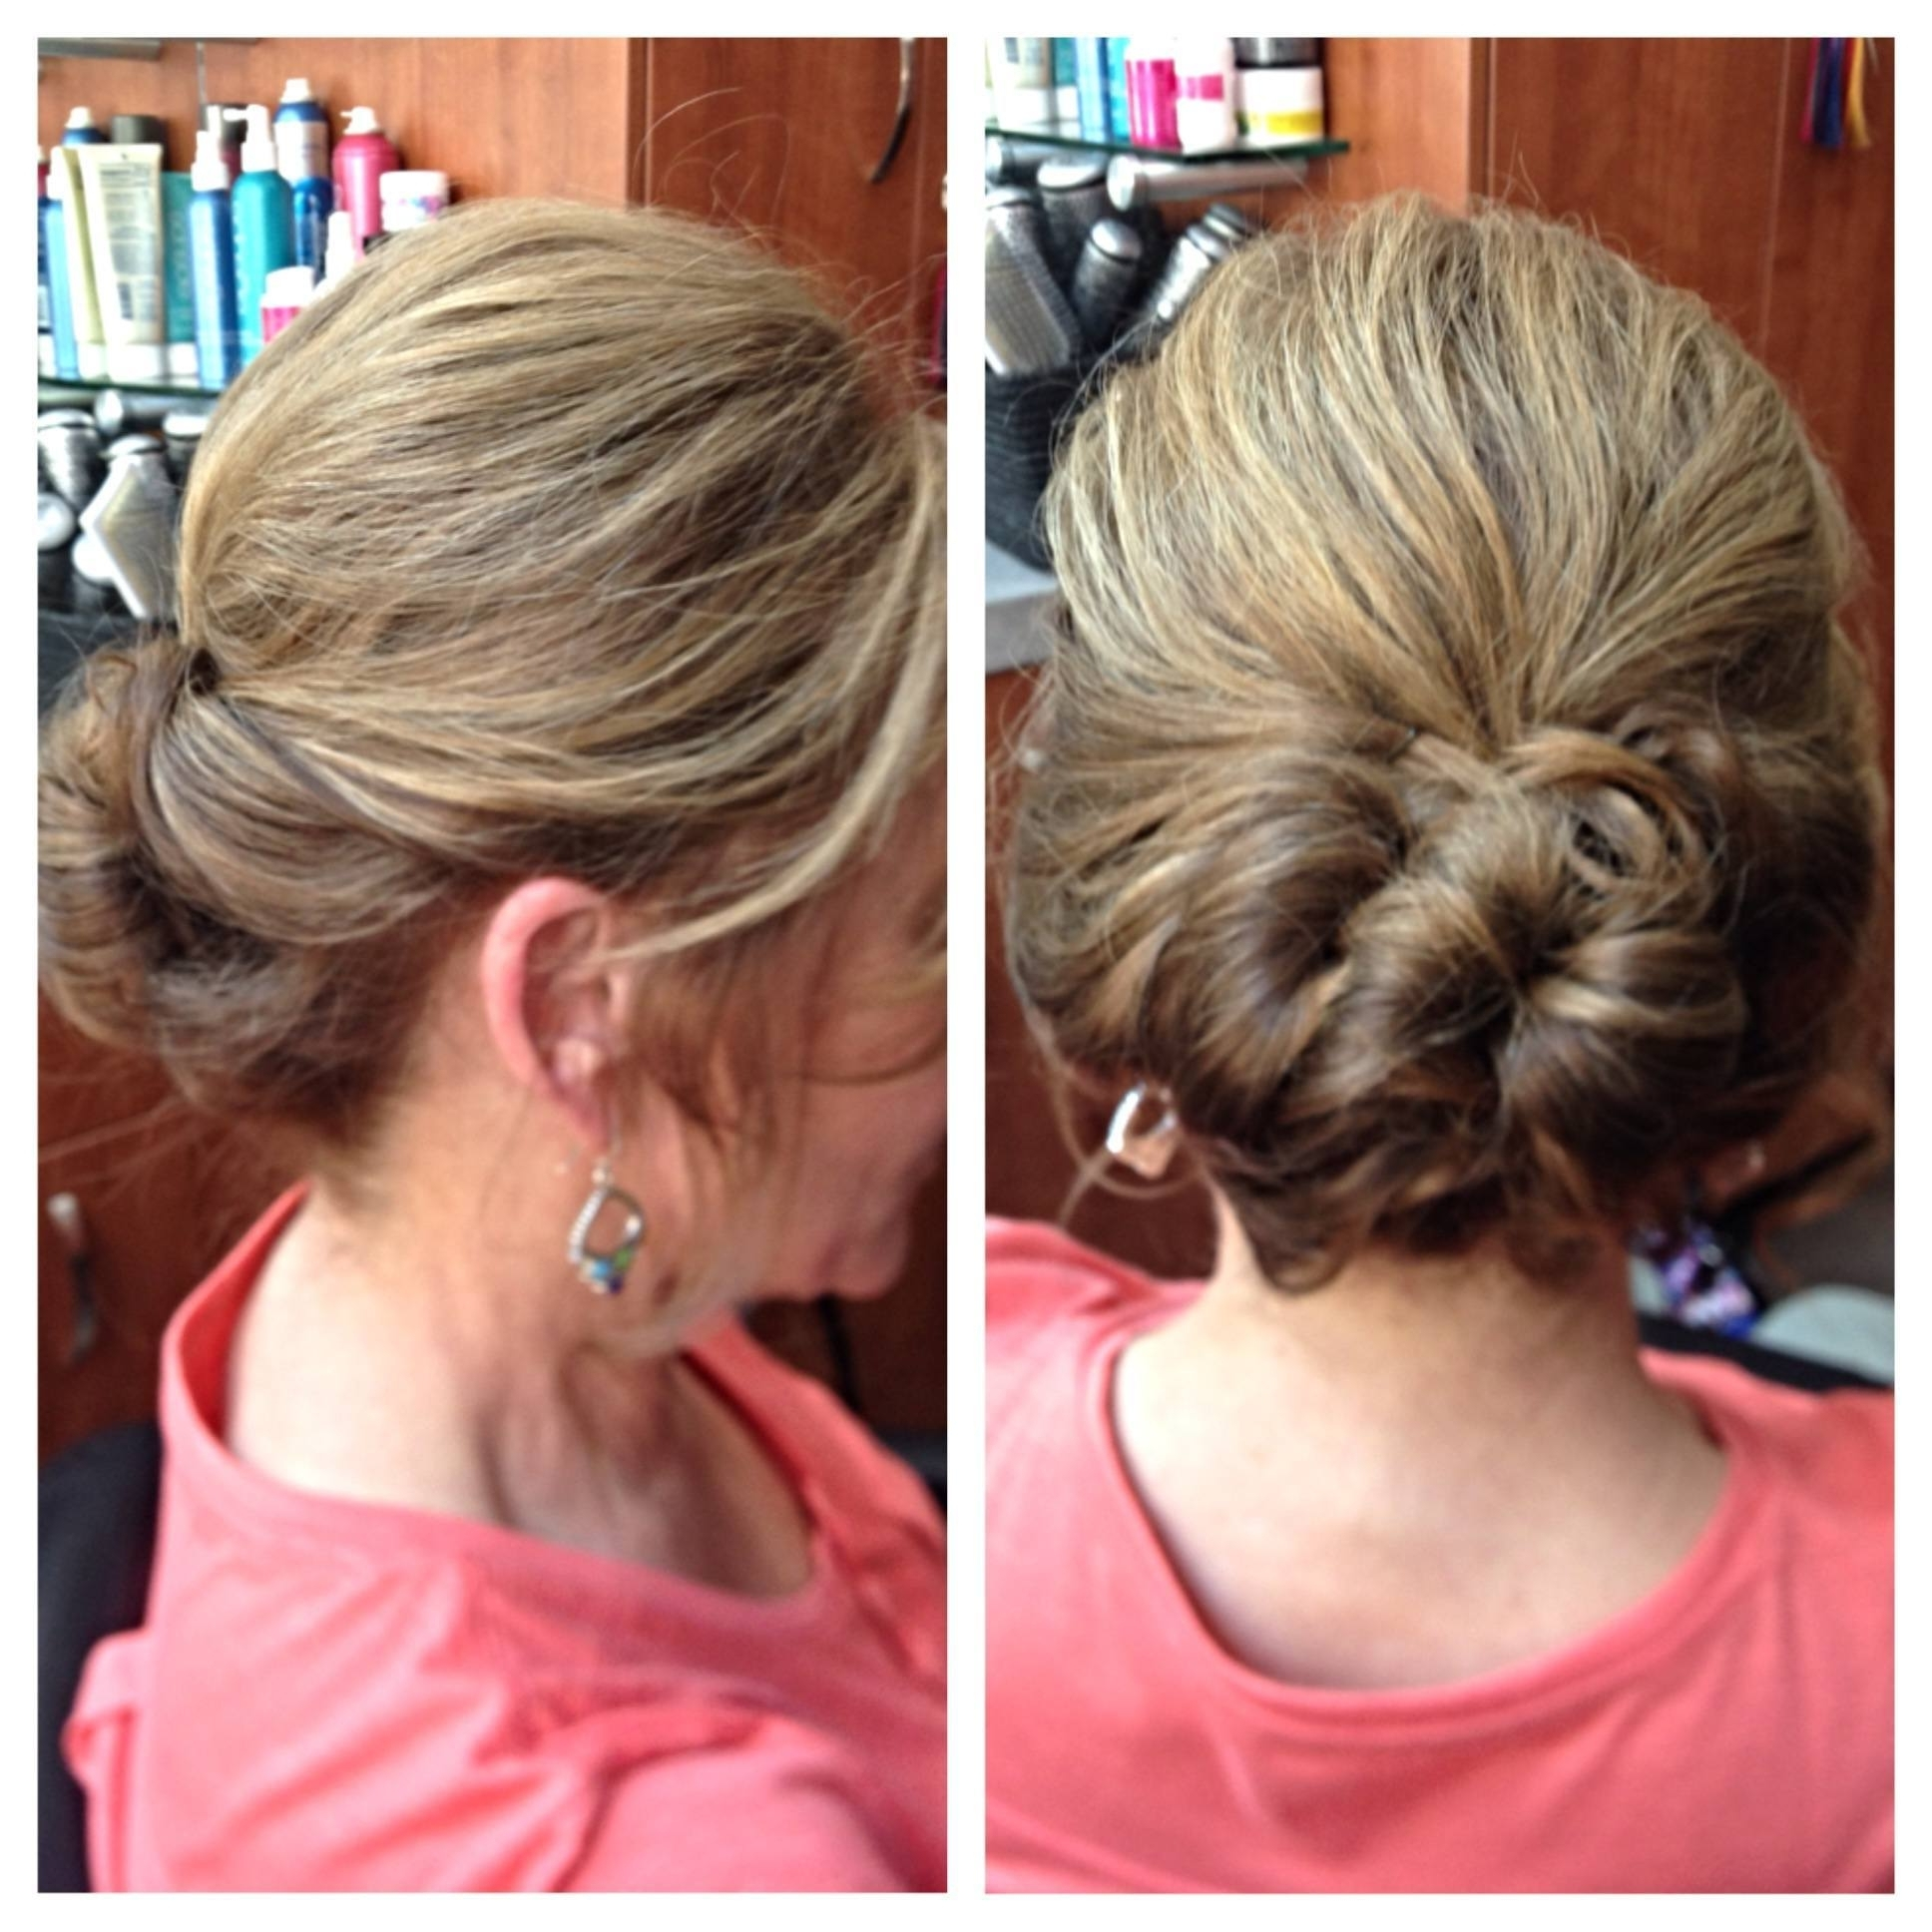 Popular Mother Of The Bride Updo Wedding Hairstyles With Amusing Wedding Hairstyles For Mother Of The Bride About Pin (View 10 of 15)